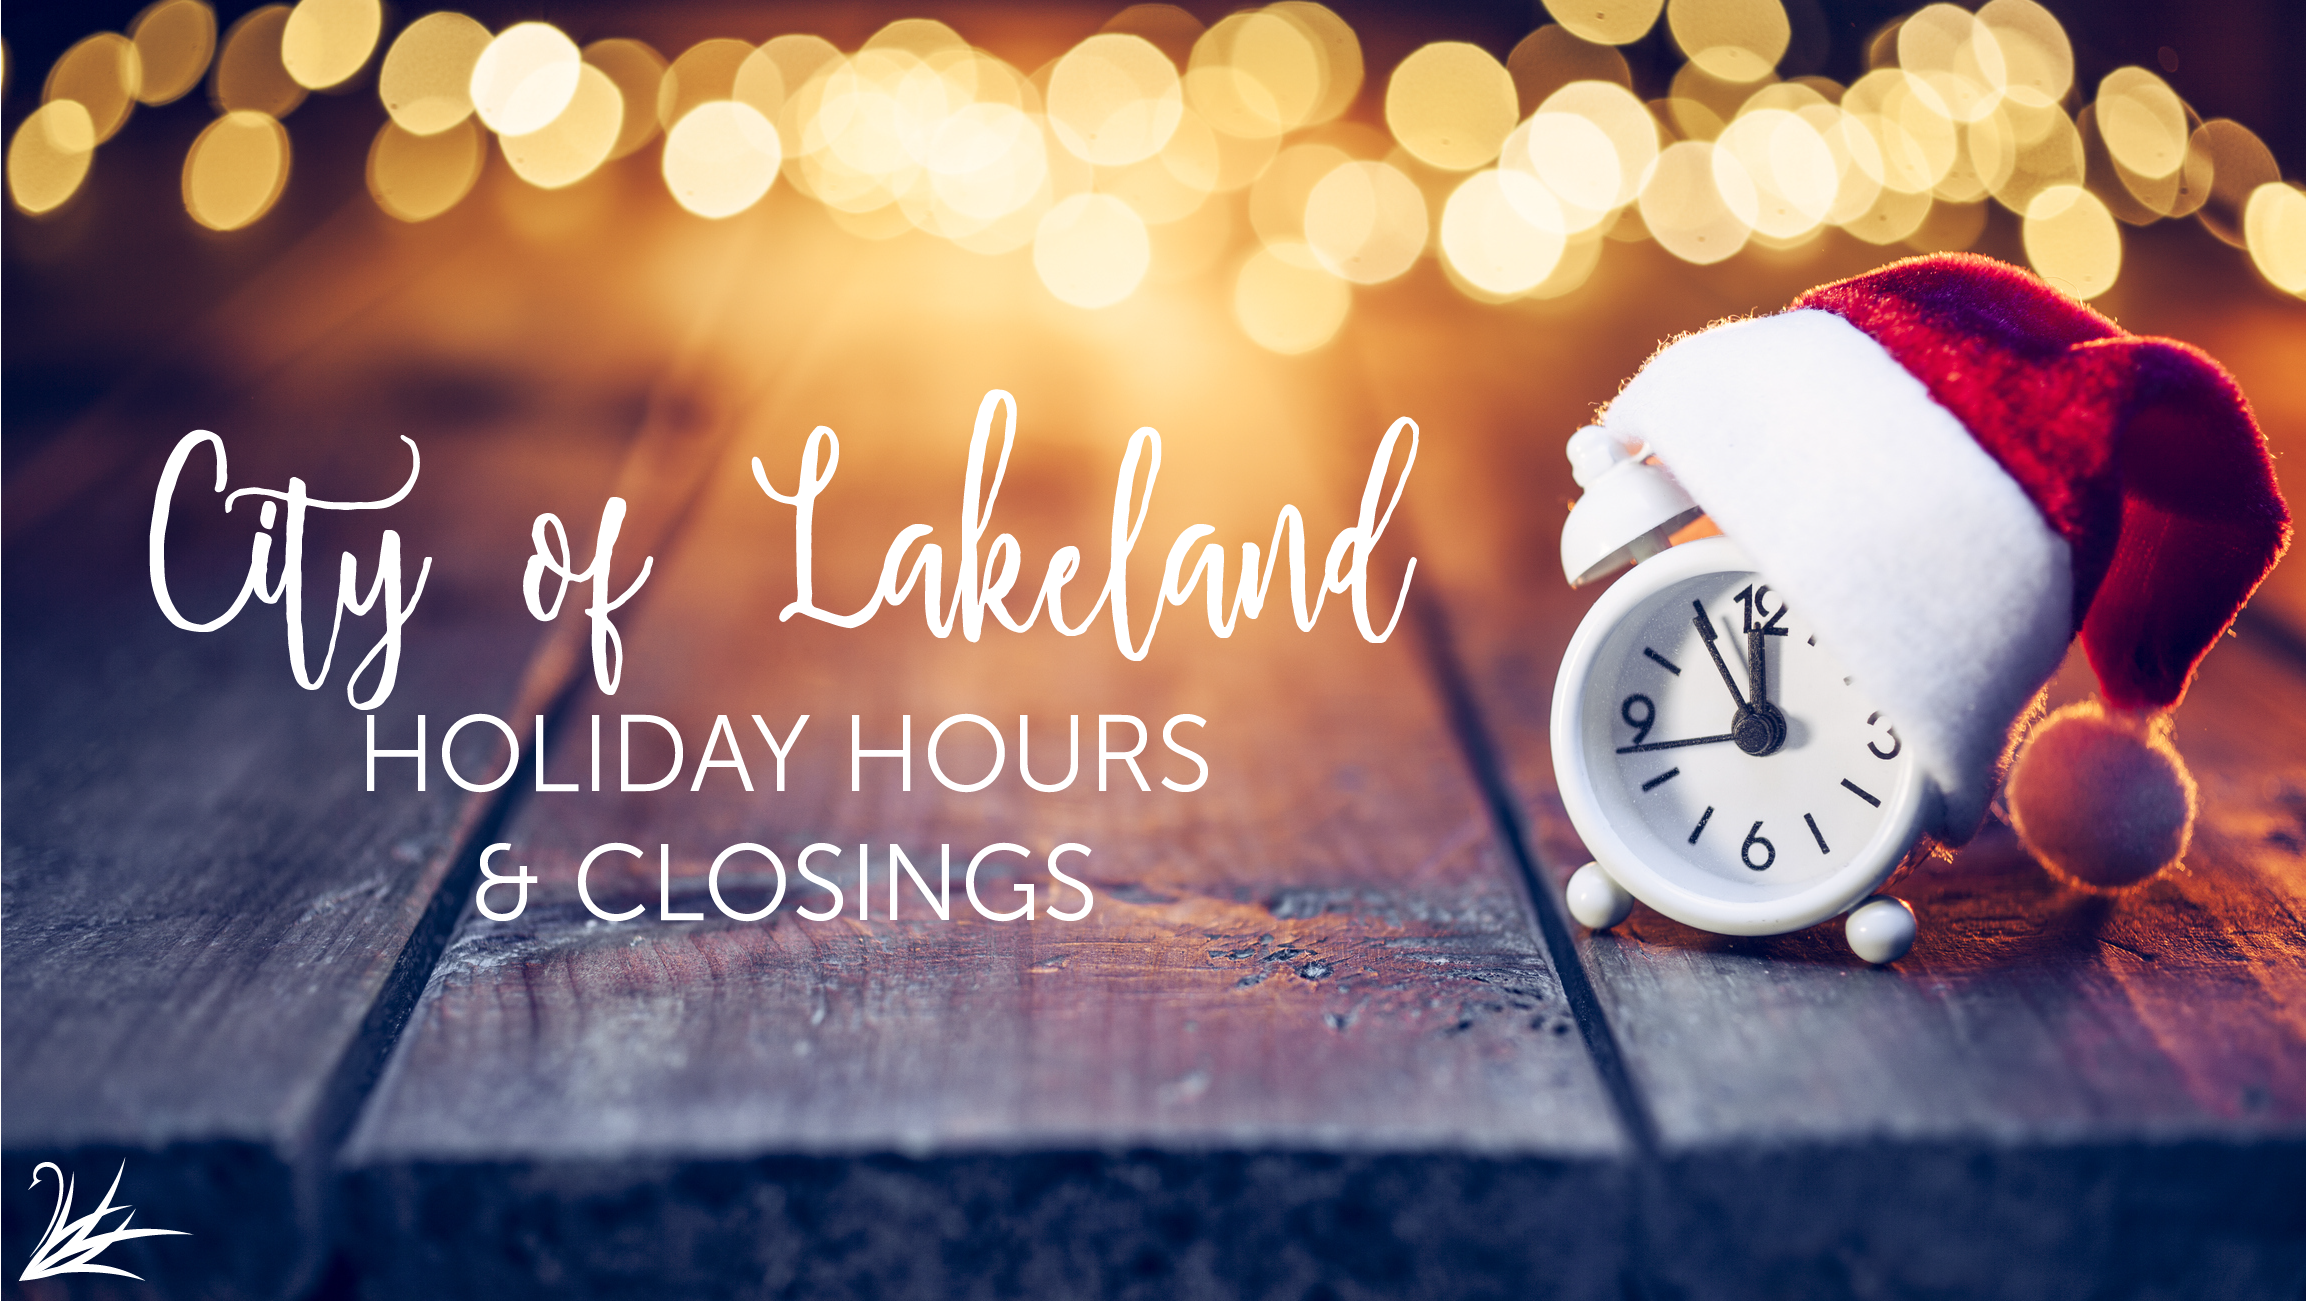 city of lakeland holiday hours photo with clock wearing a santa hat